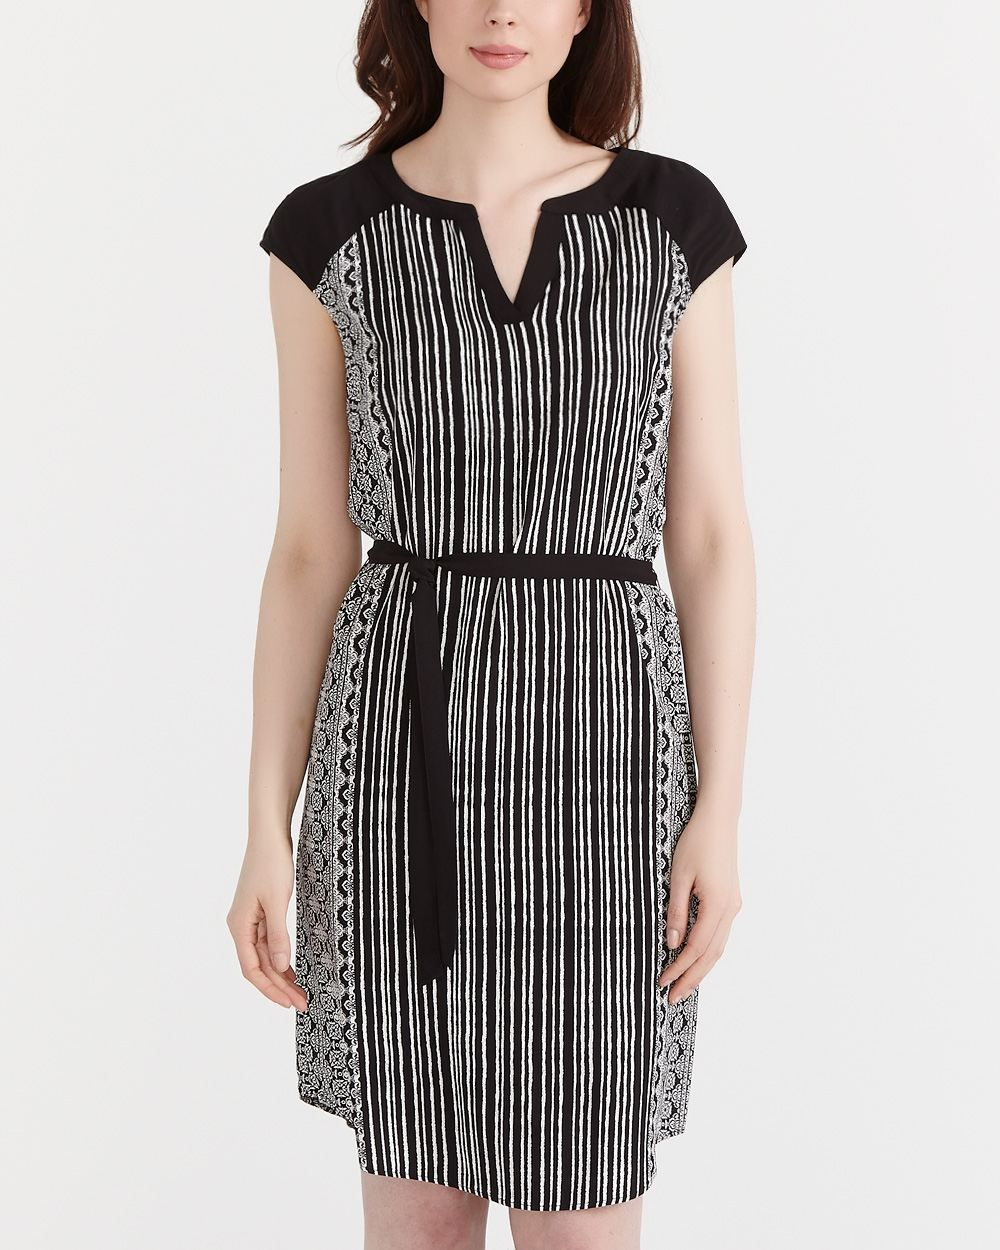 This short sleeve belted dress is made of rayon and polyester it